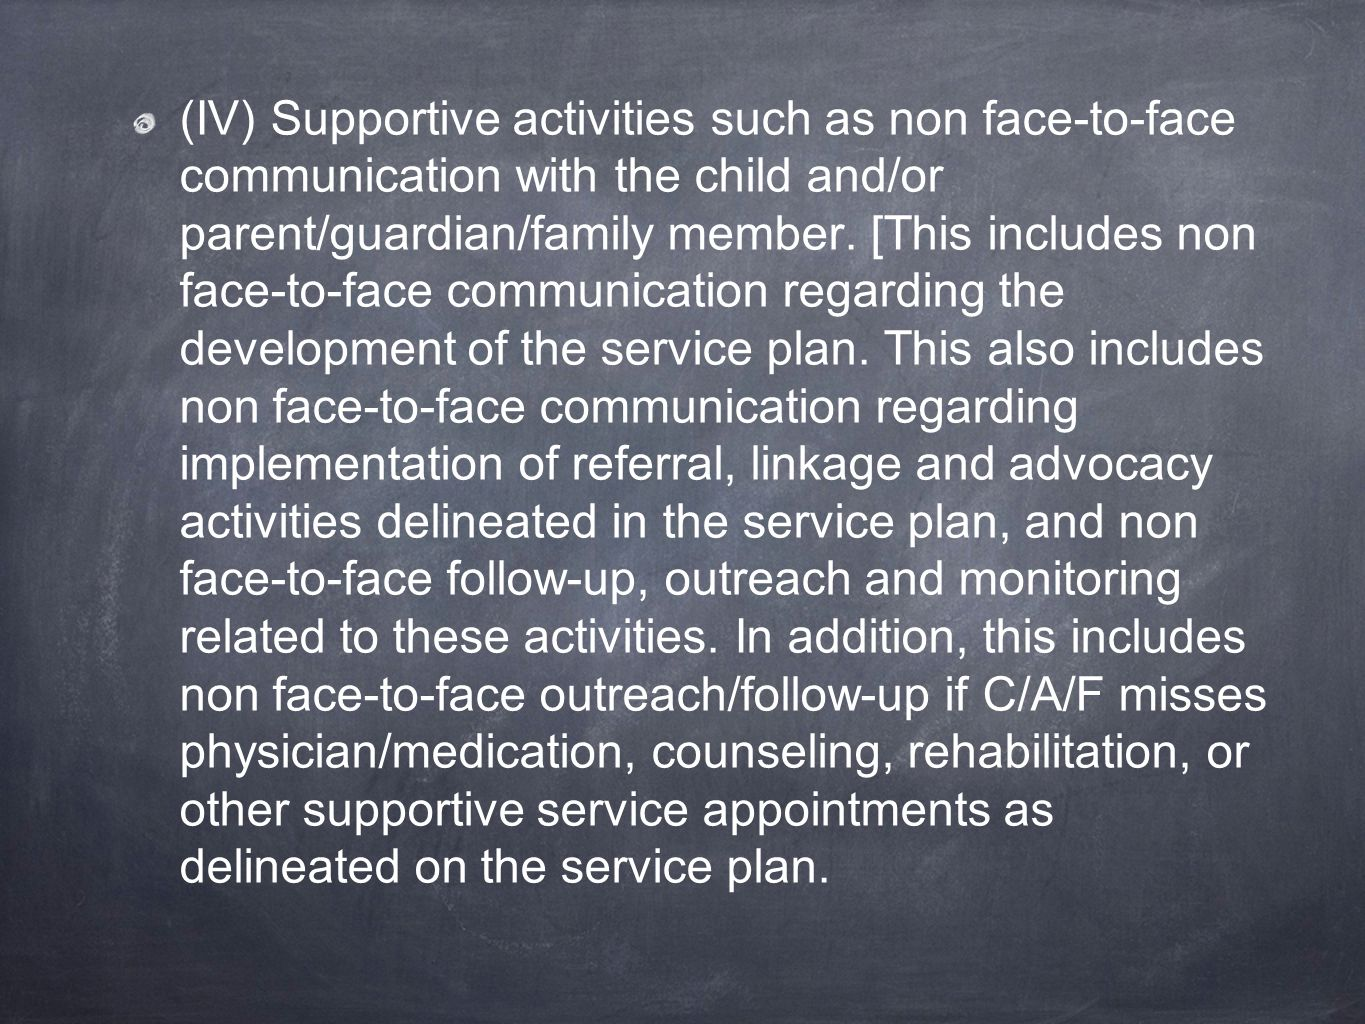 (IV) Supportive activities such as non face-to-face communication with the child and/or parent/guardian/family member. [This includes non face-to-face